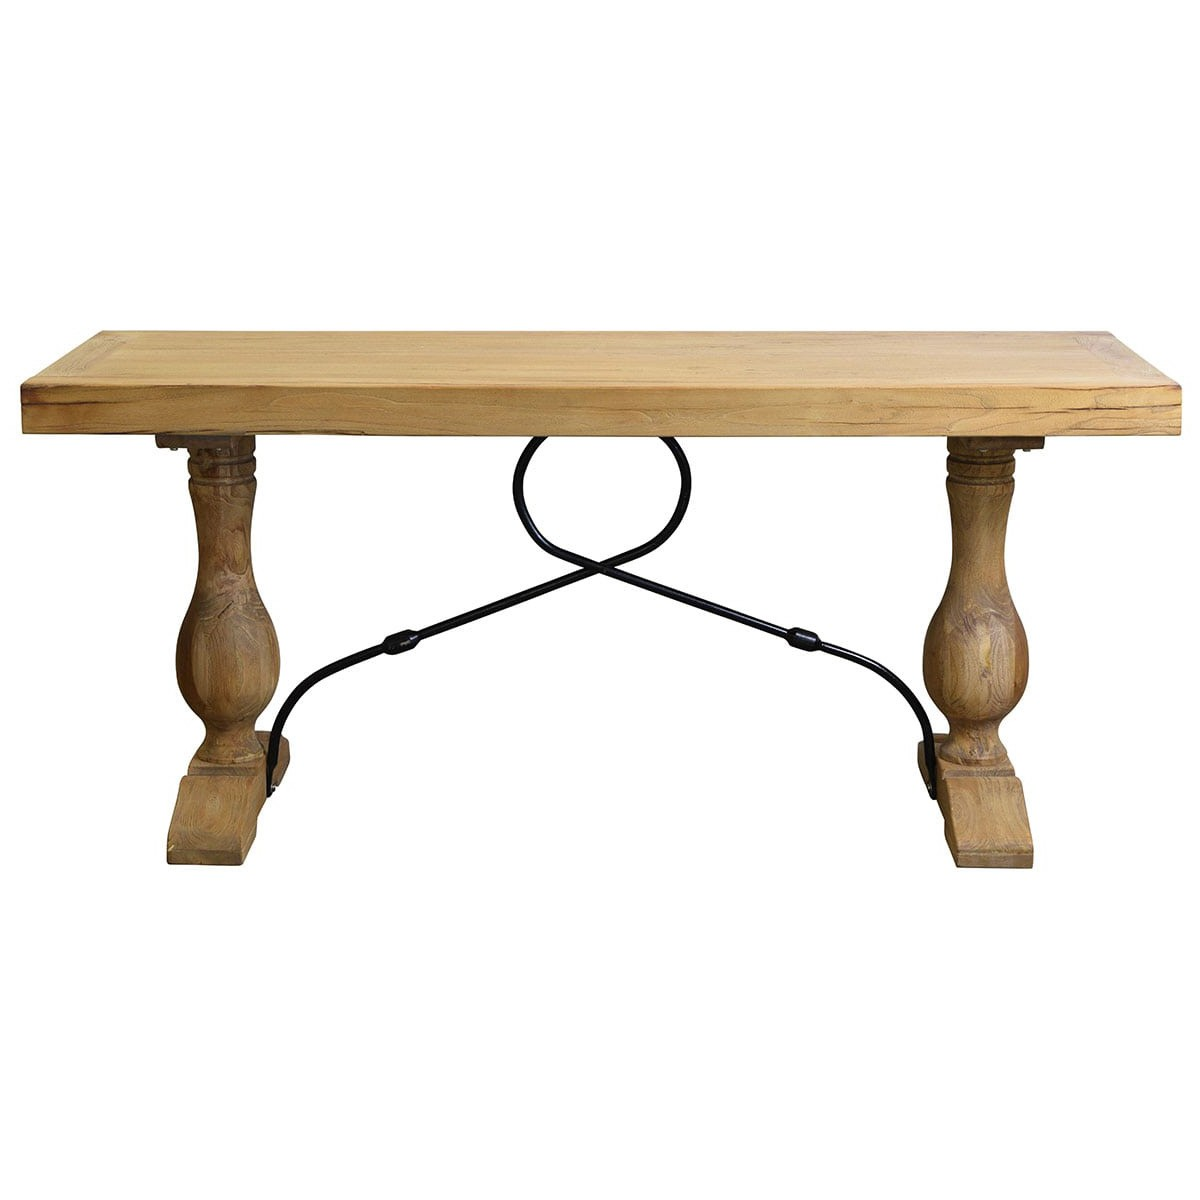 Madrid Reclaimed Elm Timber Console Table, 180cm, Natural